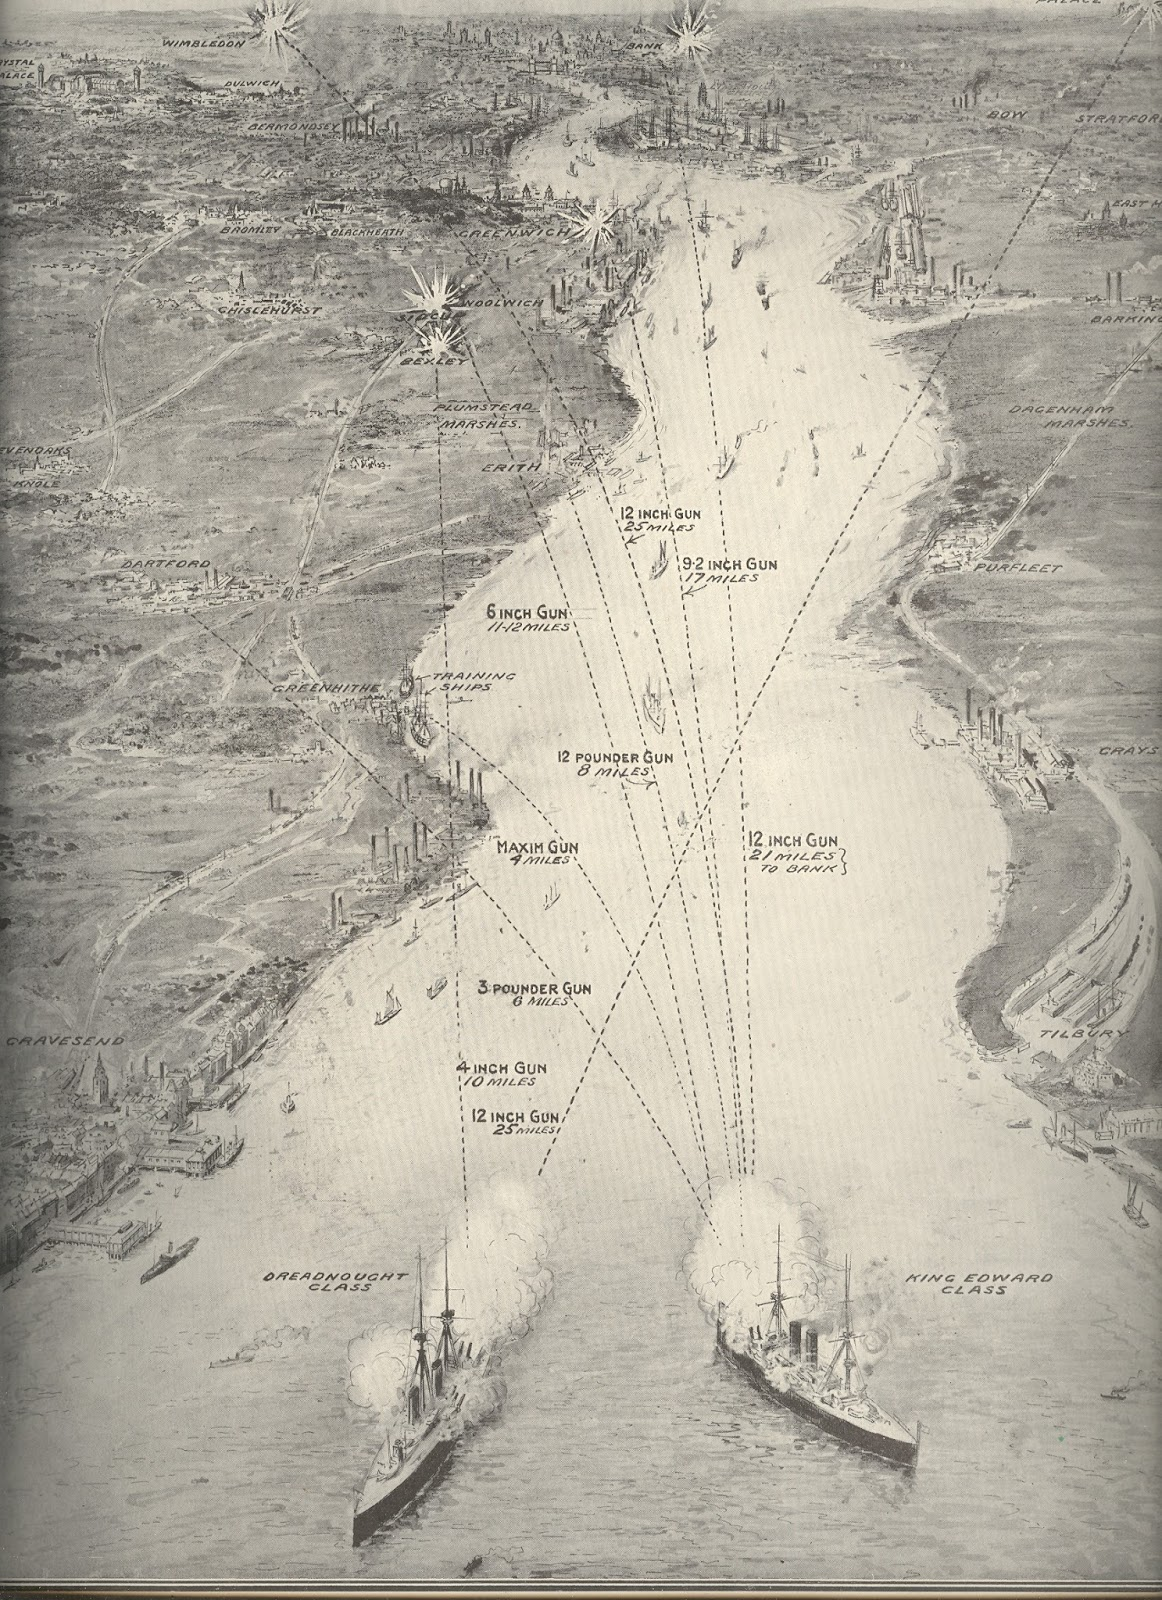 Map of River Thames showing comparative range of naval guns firing upon London (Illustrated London News, 24 July 1909)